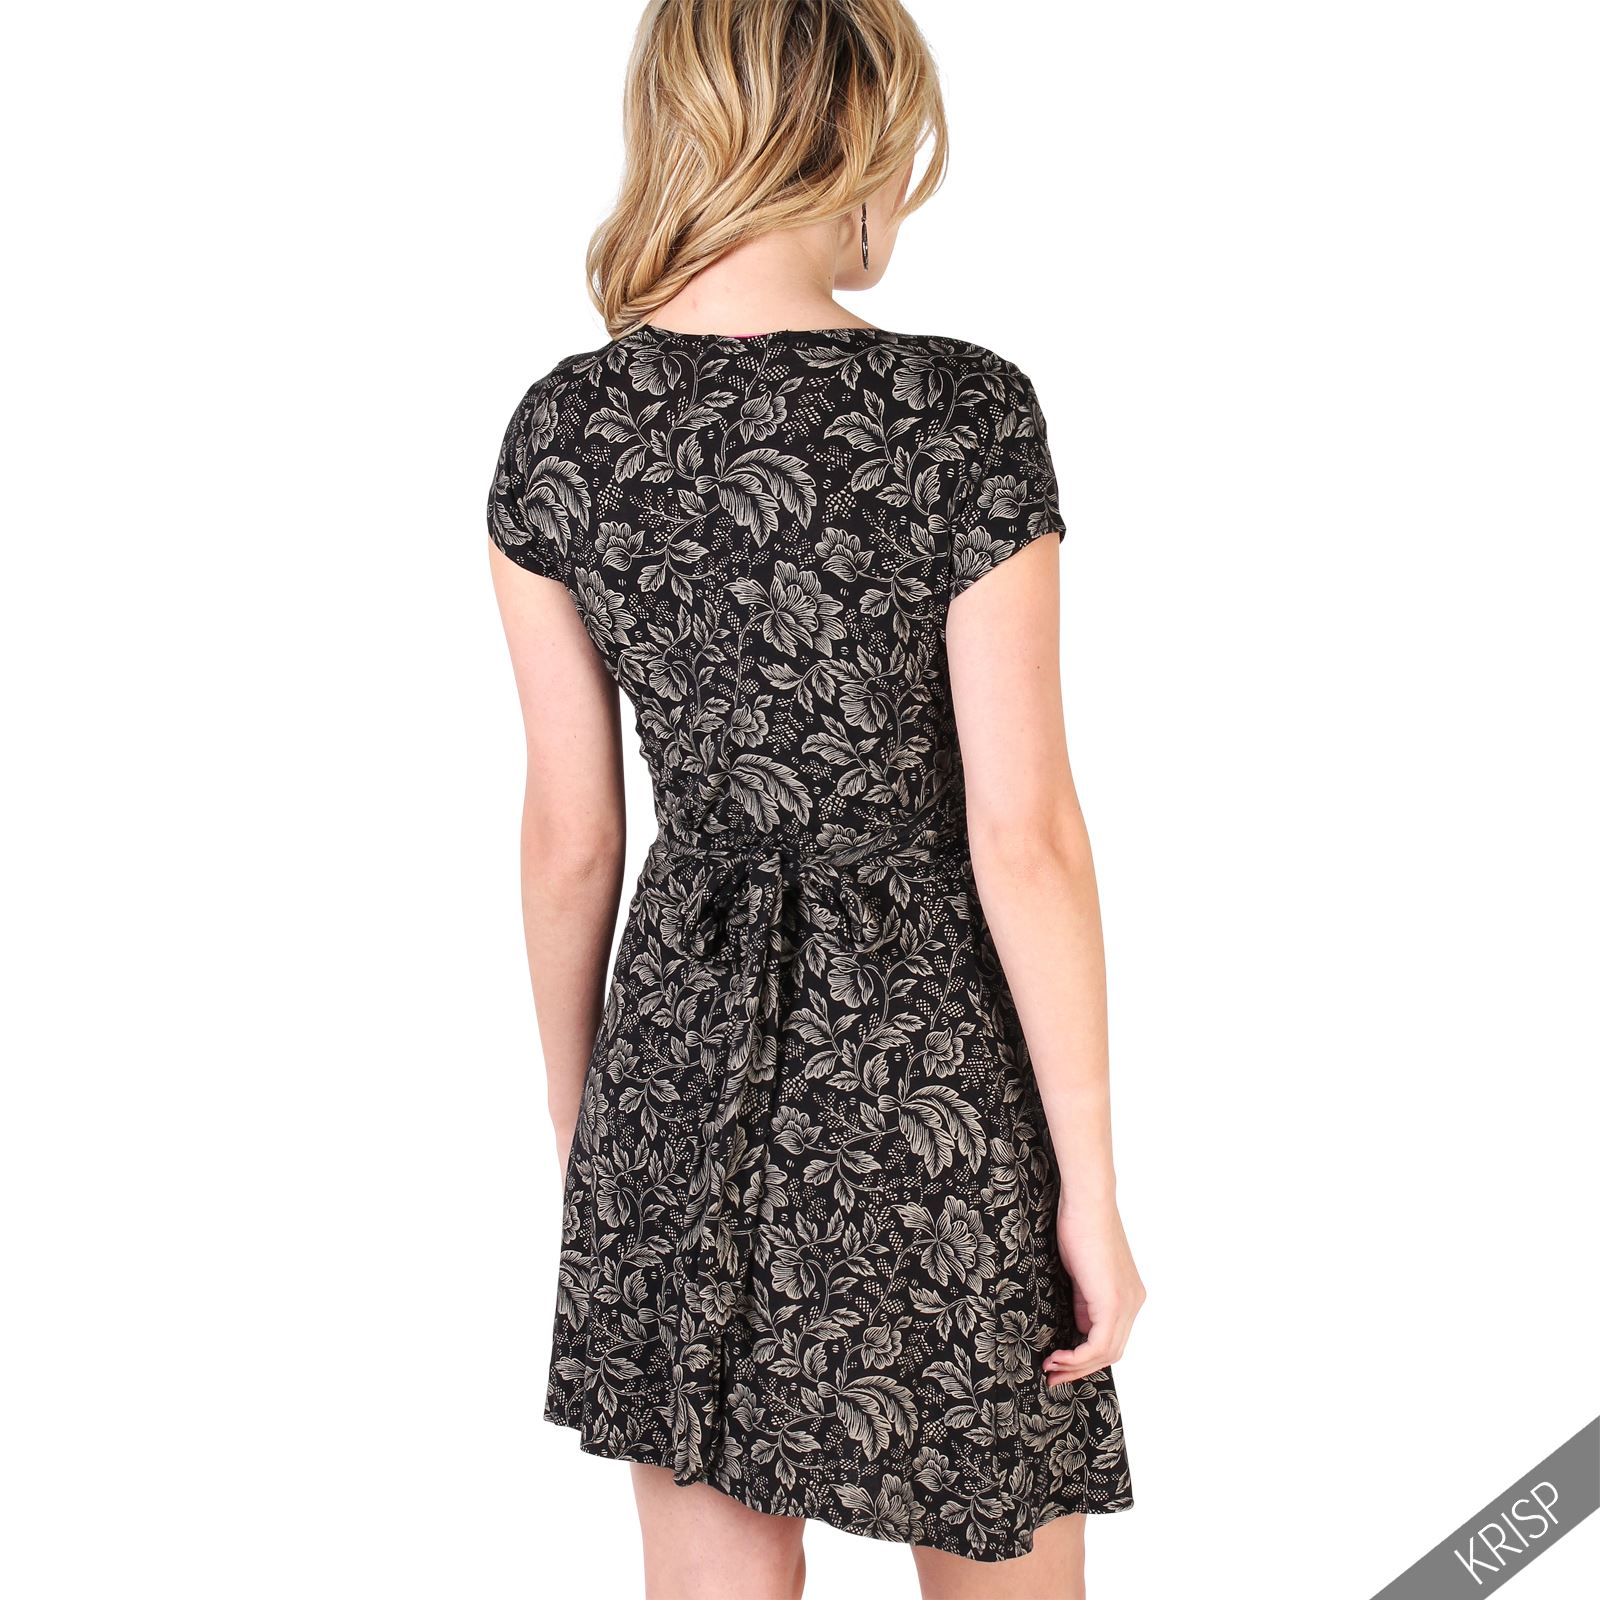 Womens-Ladies-V-Neck-Mini-Midi-Dress-Floral-Print-Knot-Short-Skirt-Party-Casual thumbnail 18